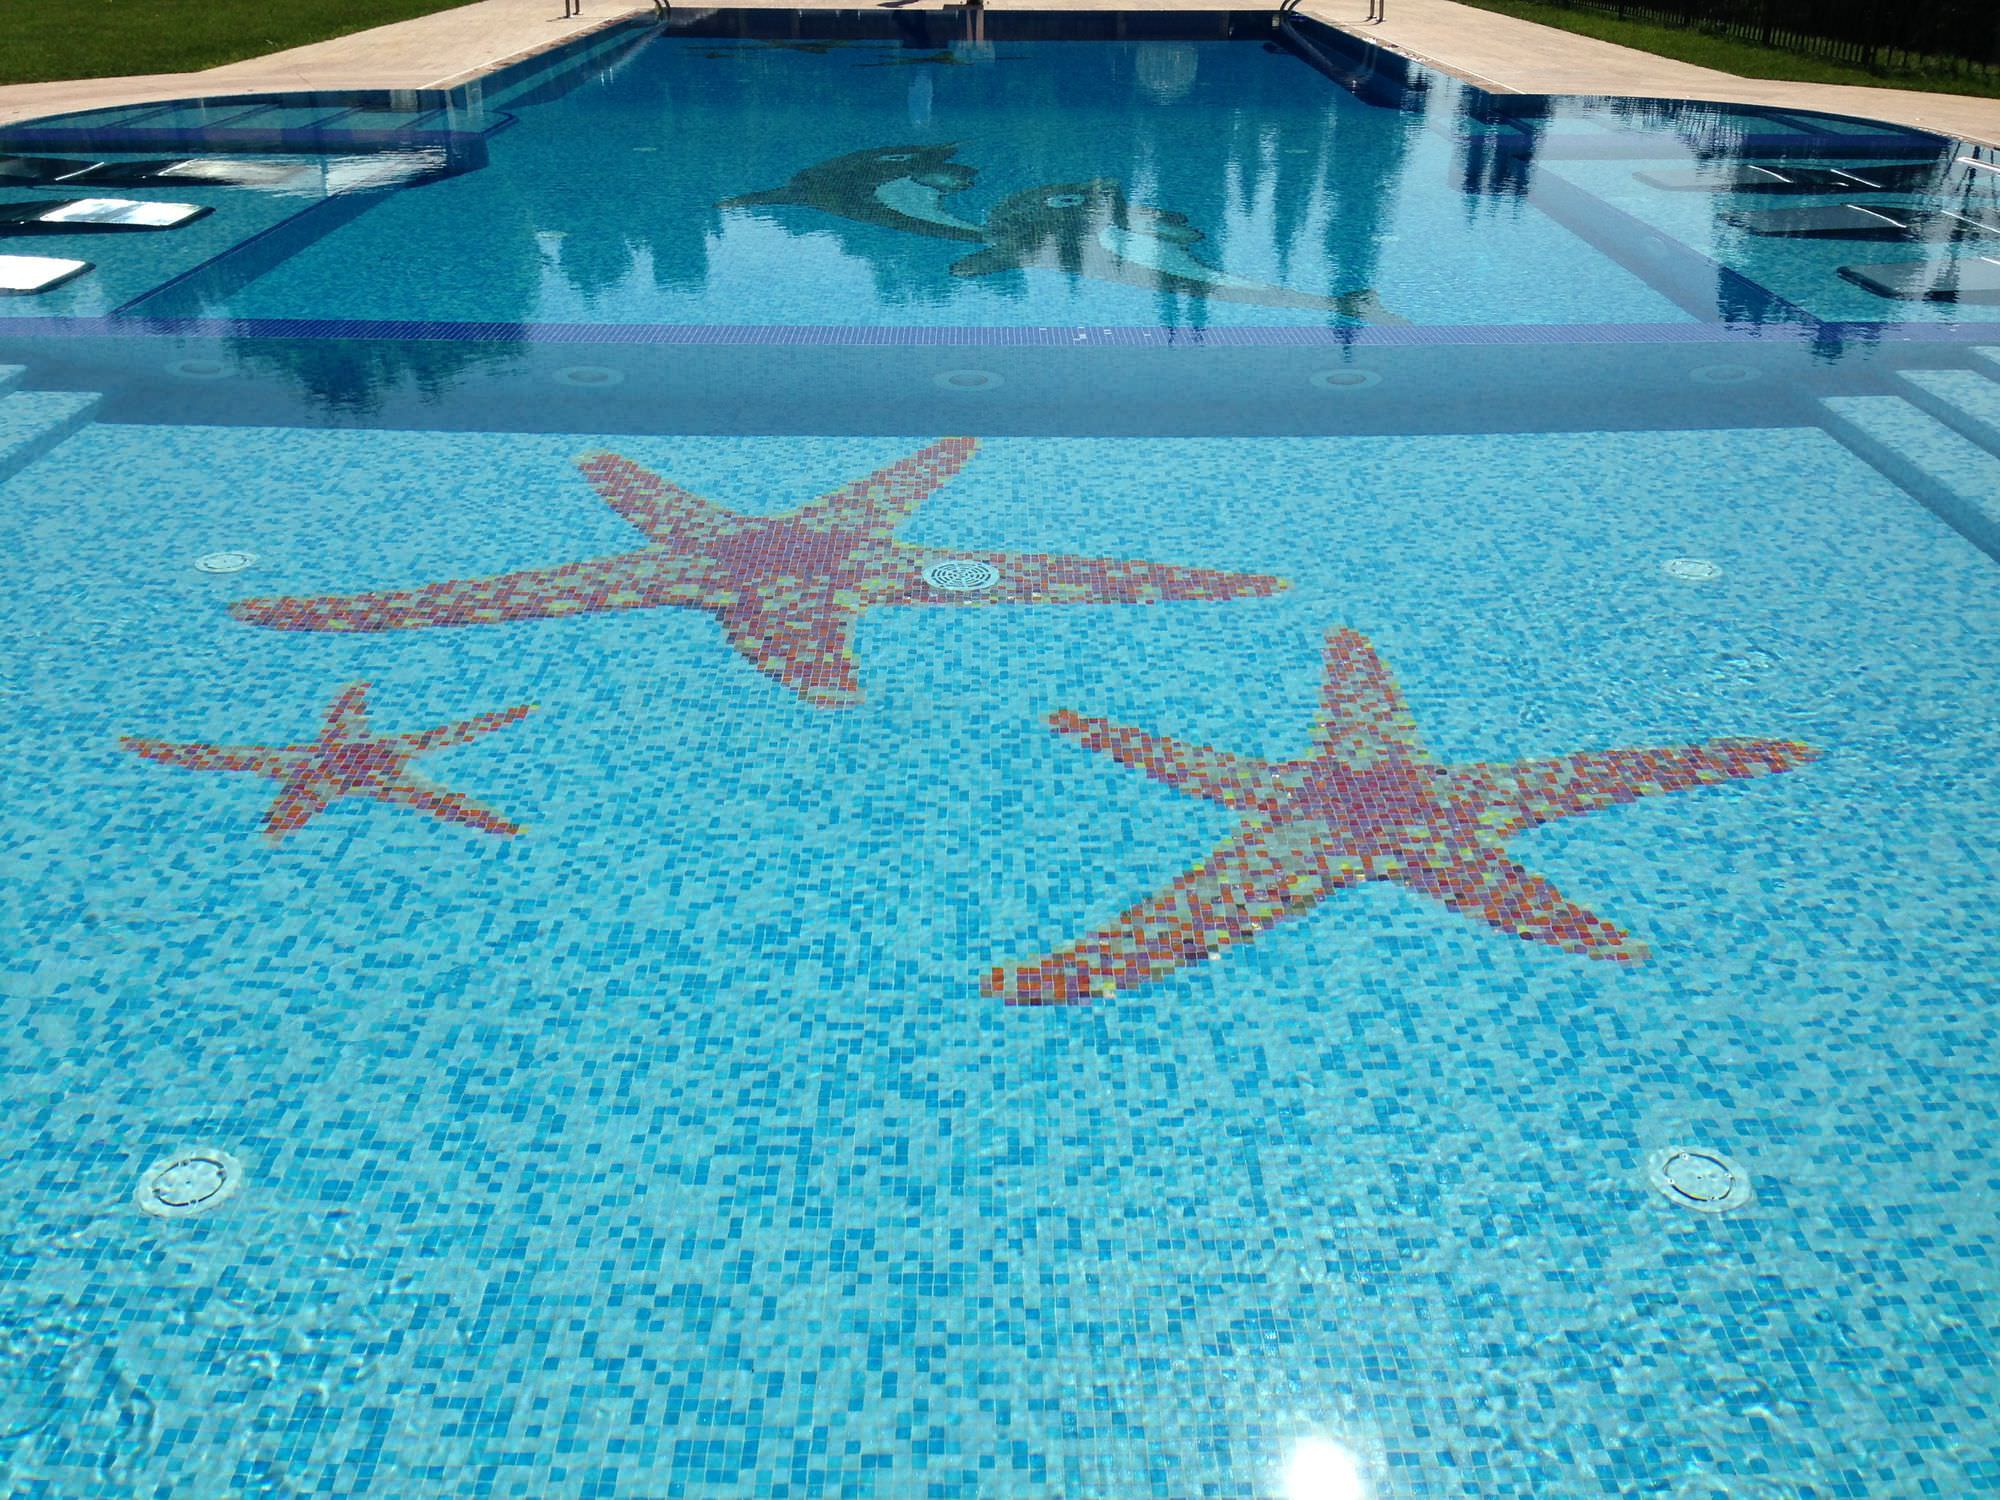 Outdoor mosaic tile / pool / floor / natural stone - EDILFARE PISCINE